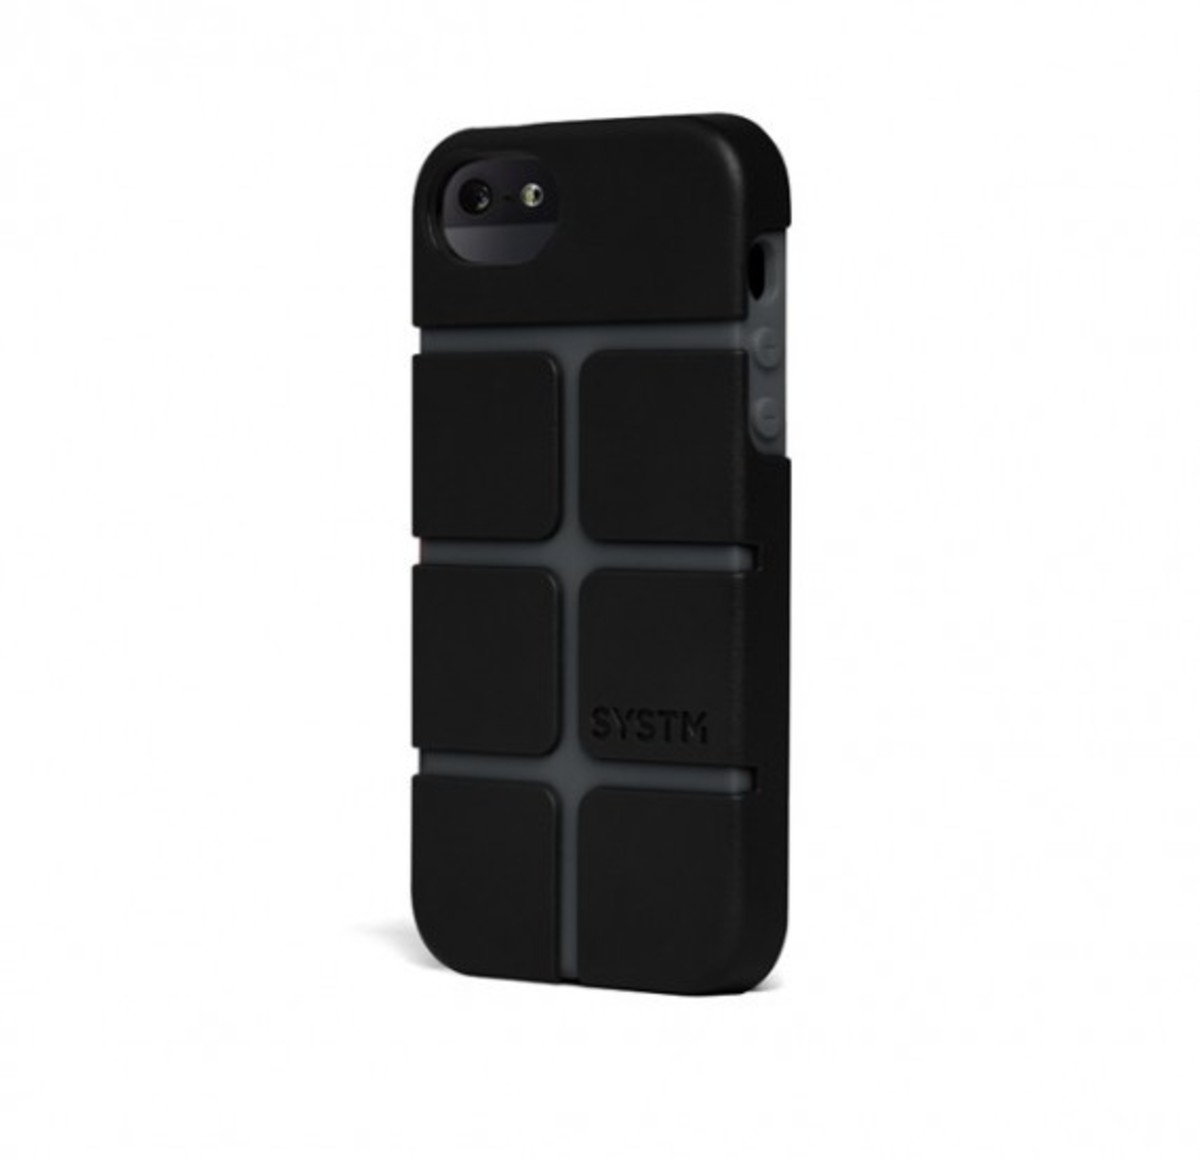 systm-iphone-5-cases-06